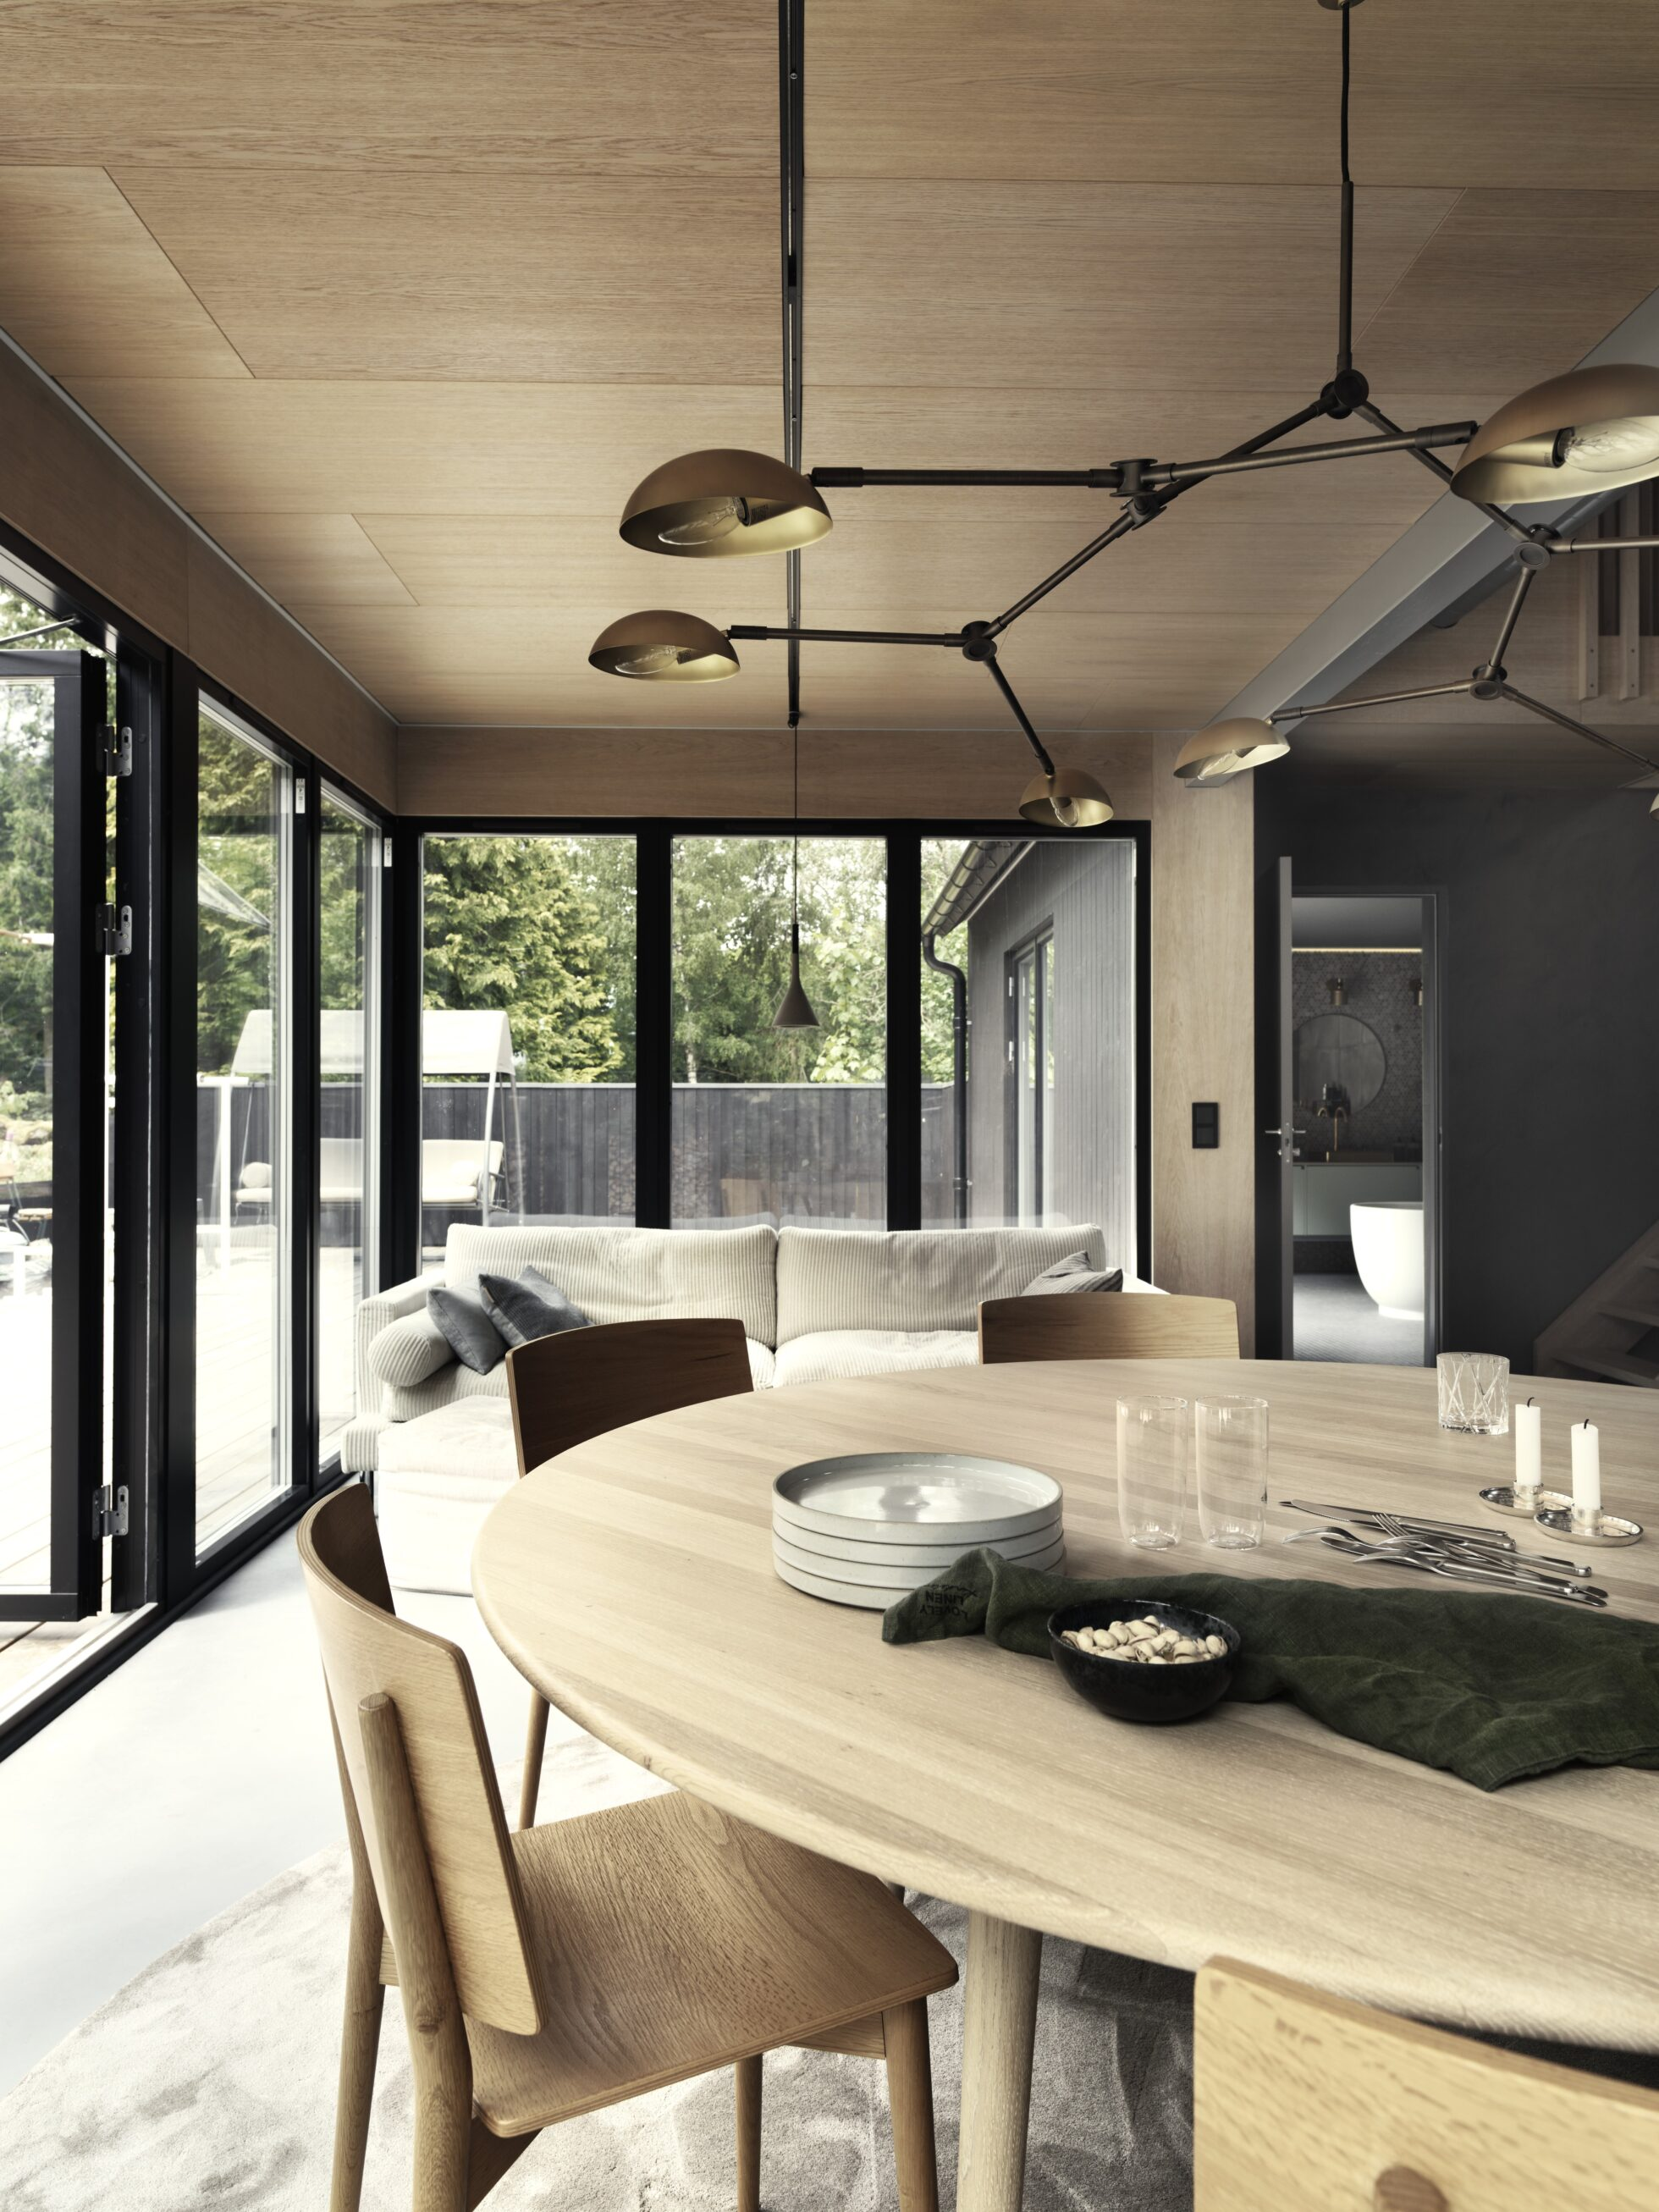 The Nordroom - A Sustainable Open-Plan Home In The Swedish Countryside